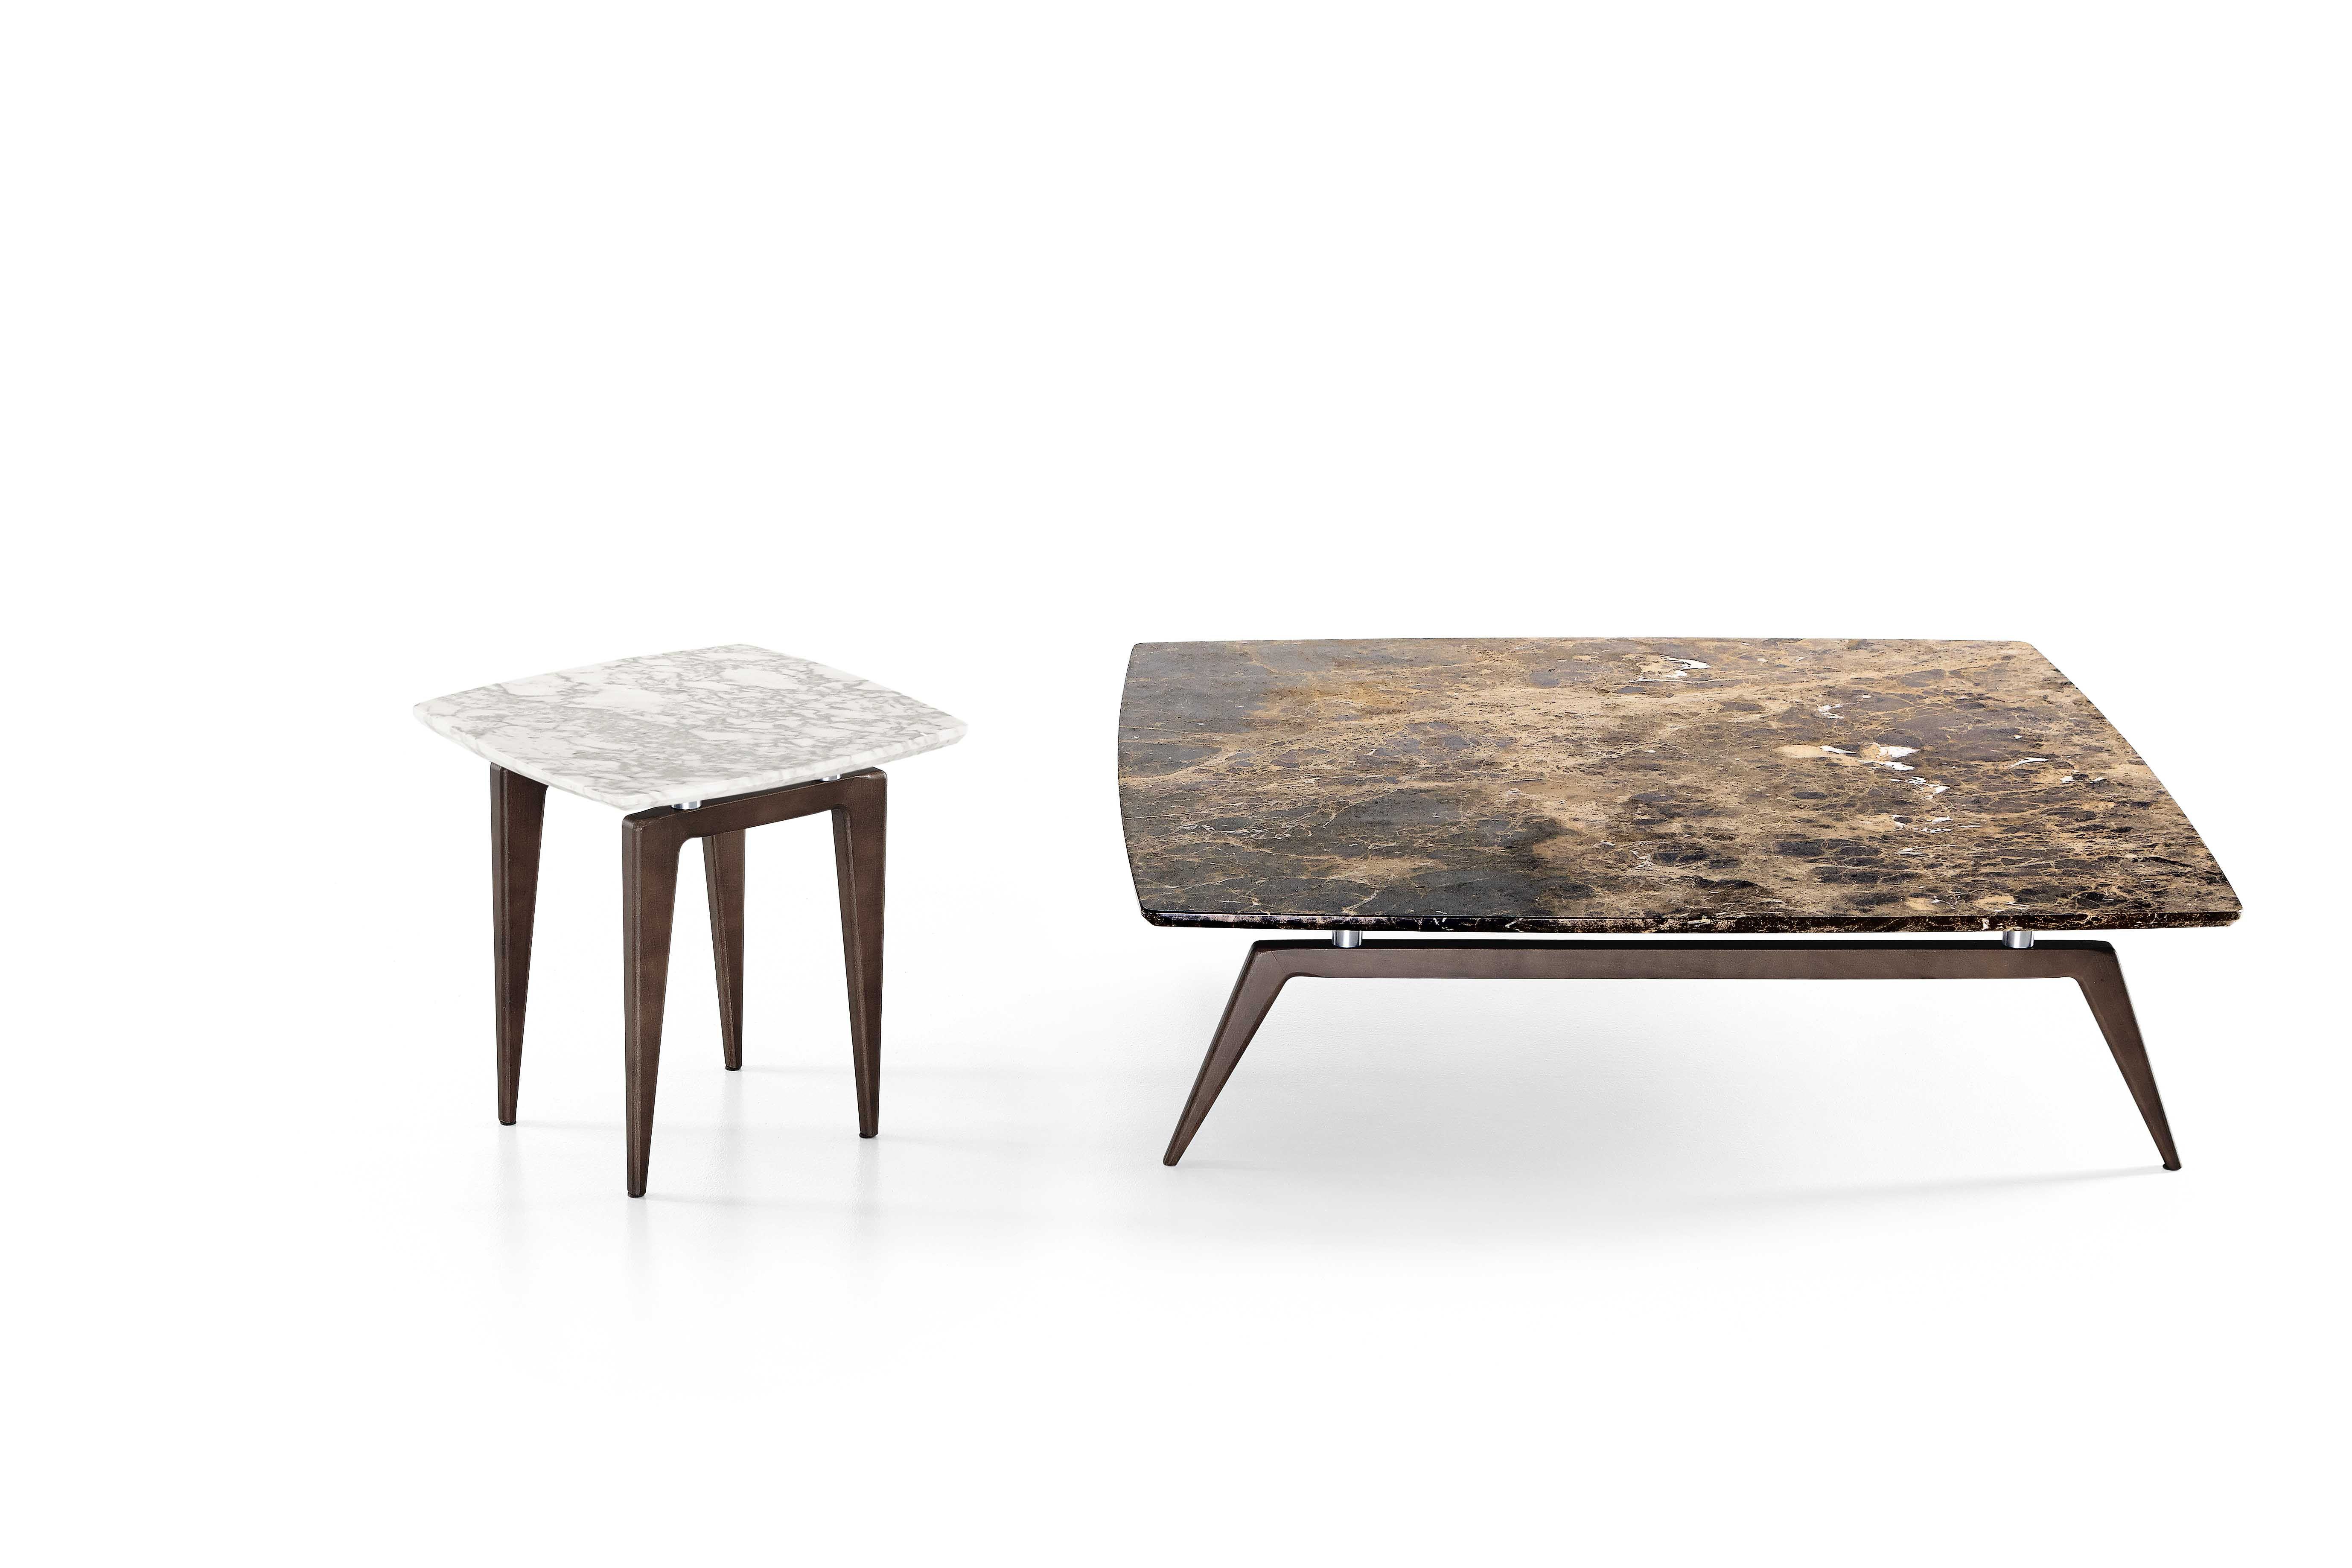 Small Table With Plane In Dark Emperor Marble Coffee Table 40x40